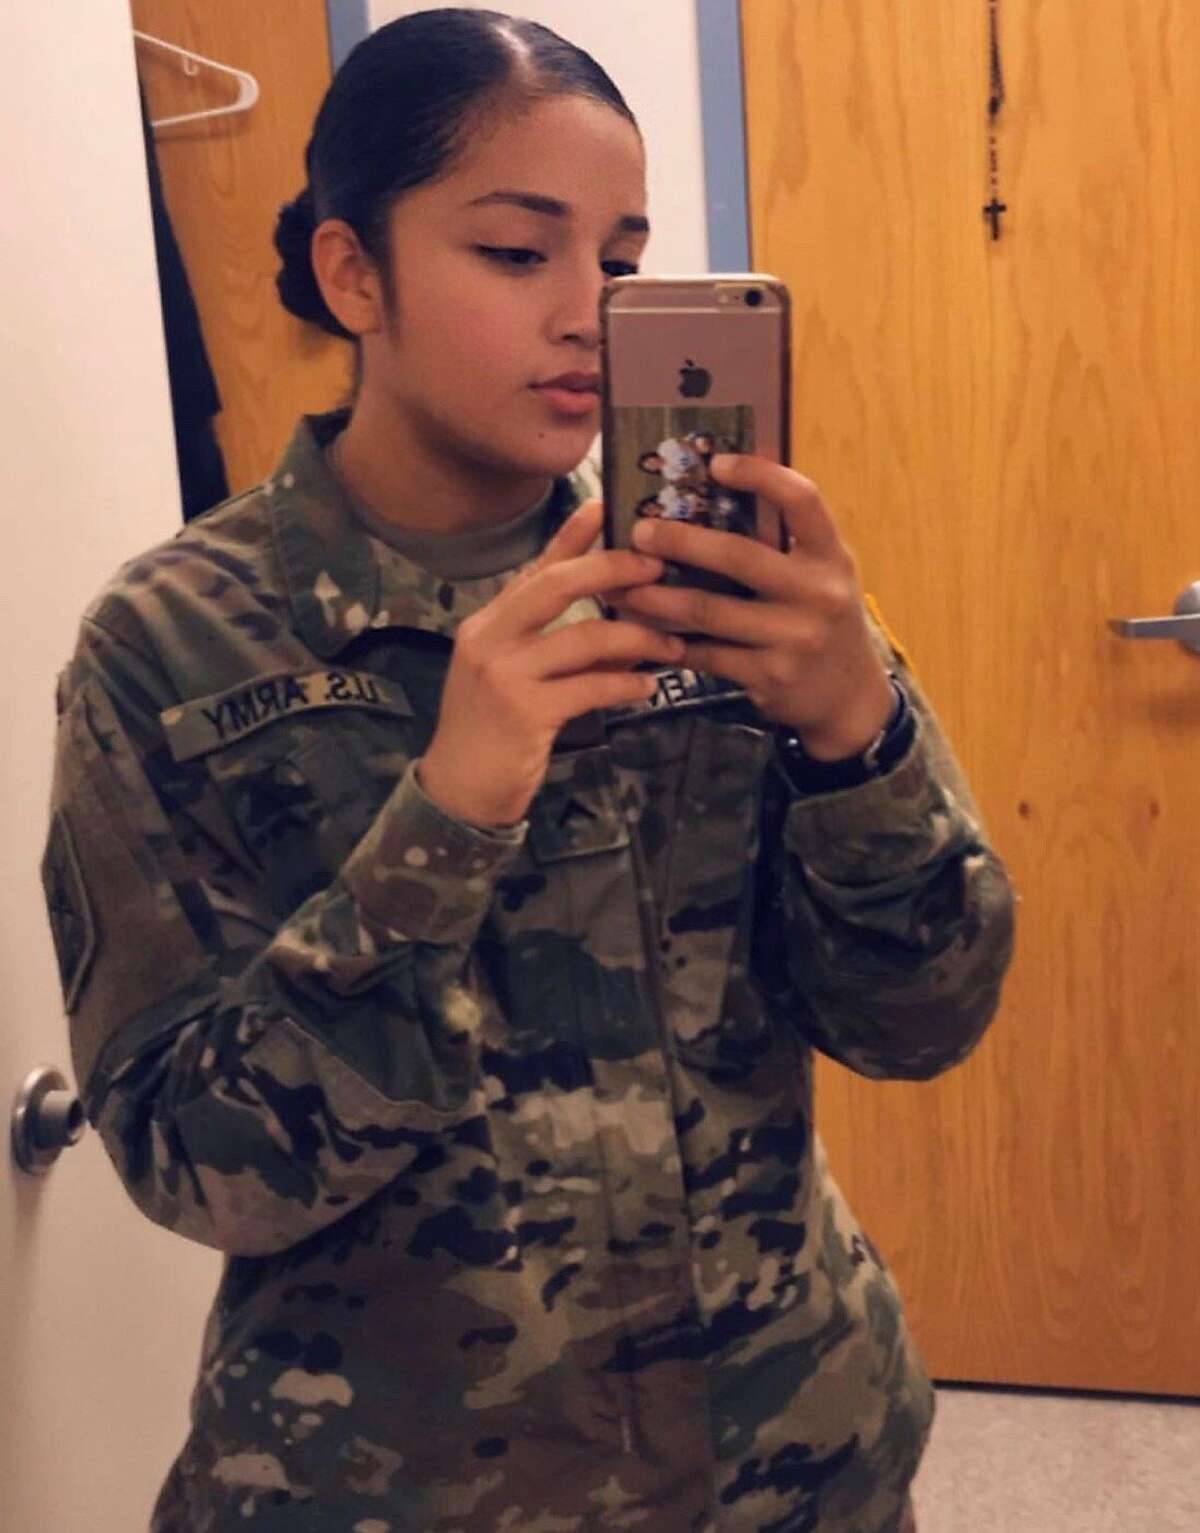 Family photo of Spc. Vanessa Guillen, who was last seen on April 22, 2020, in a parking lot at the Fort Hood Army base in Killeen, Texas.